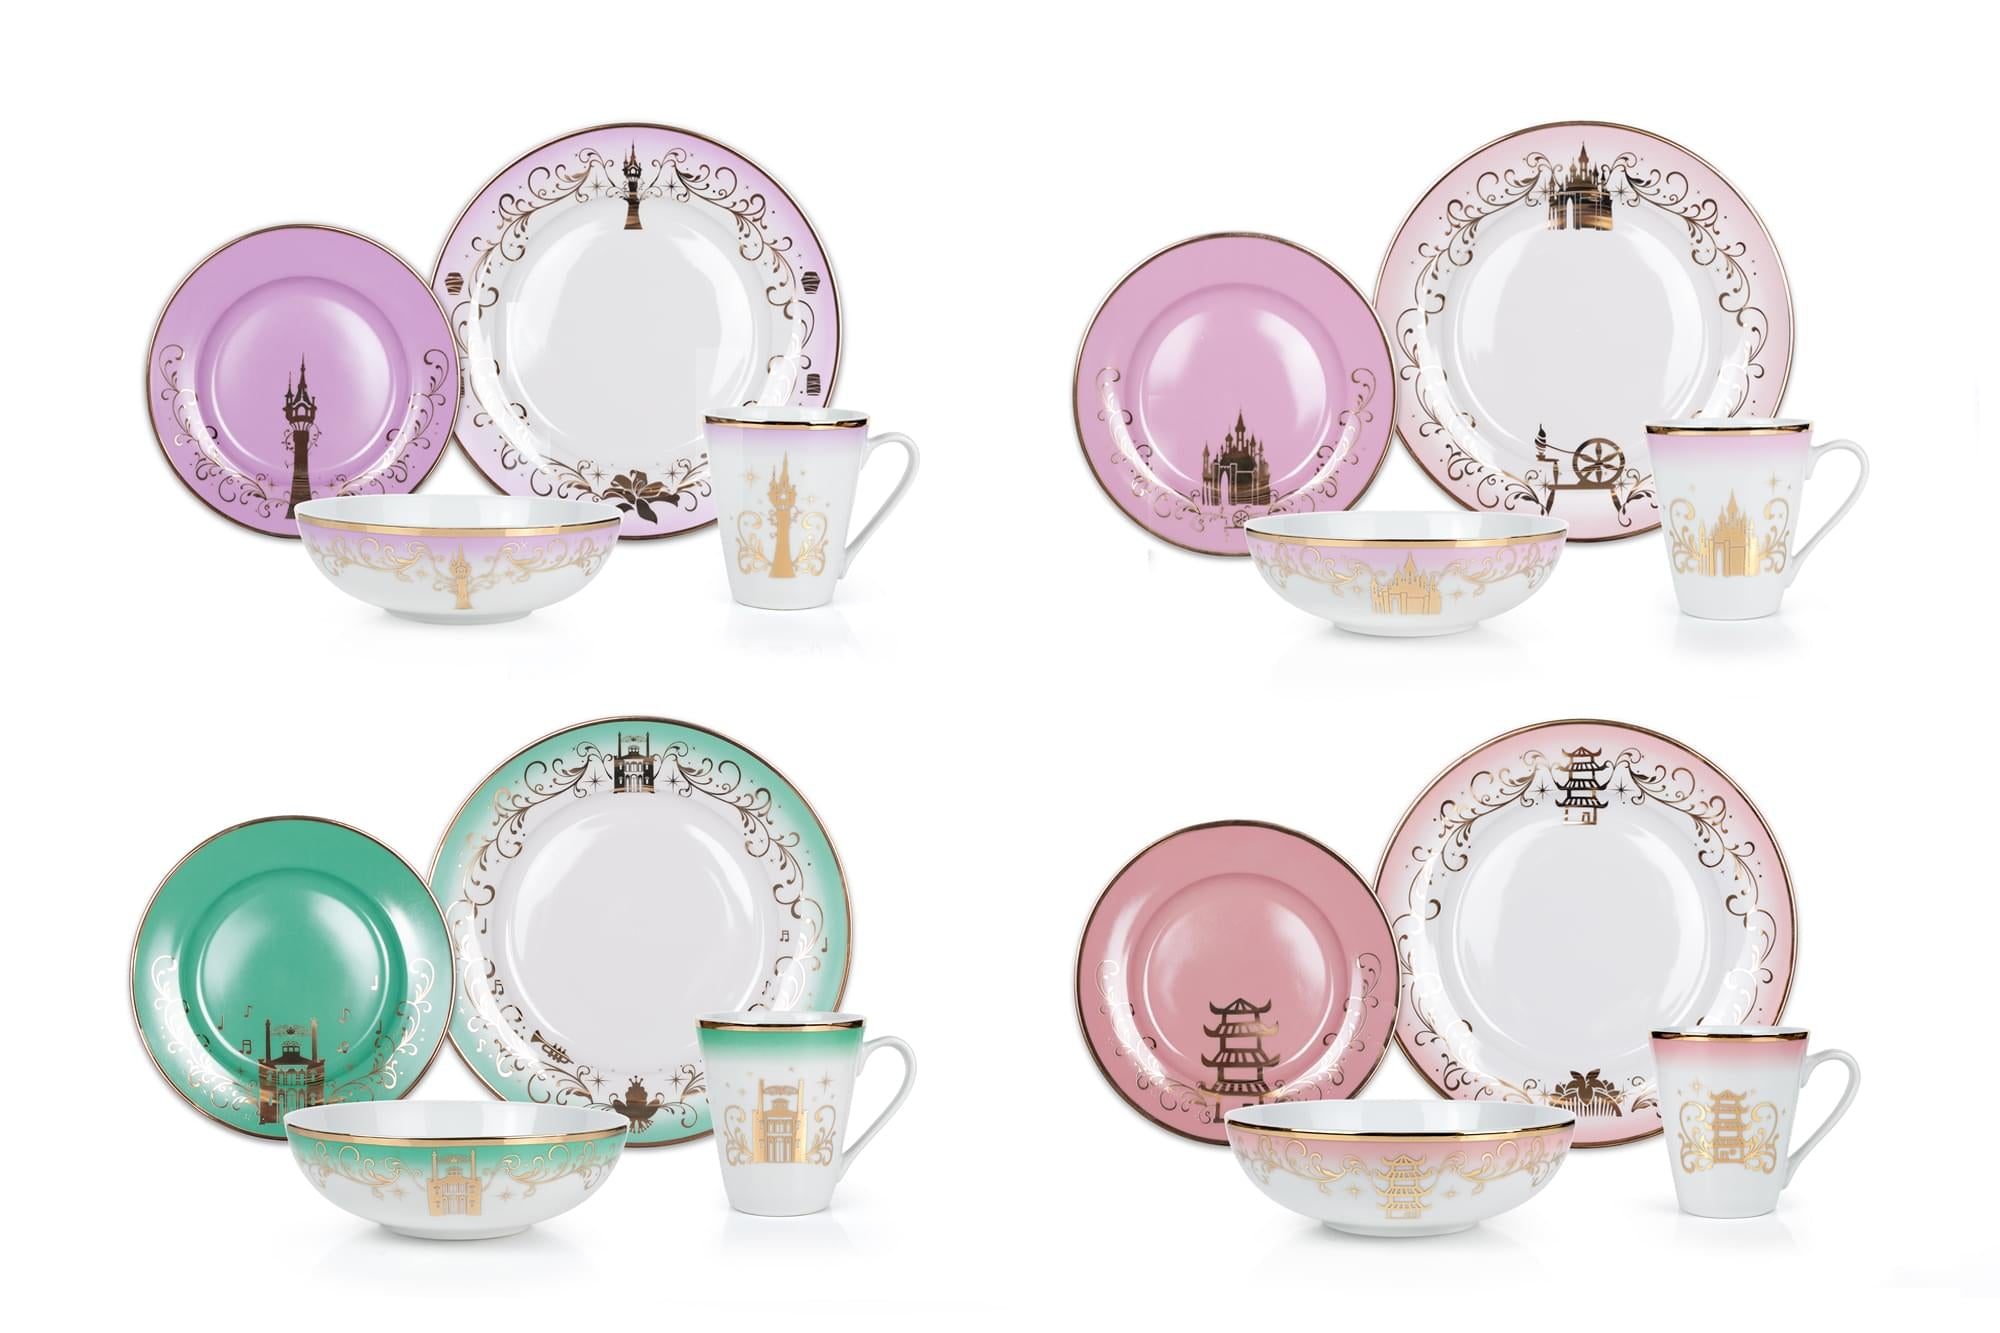 Disney Themed 16 Piece Ceramic Dinnerware Set Collection 2 | Plates | Bowls | Mugs